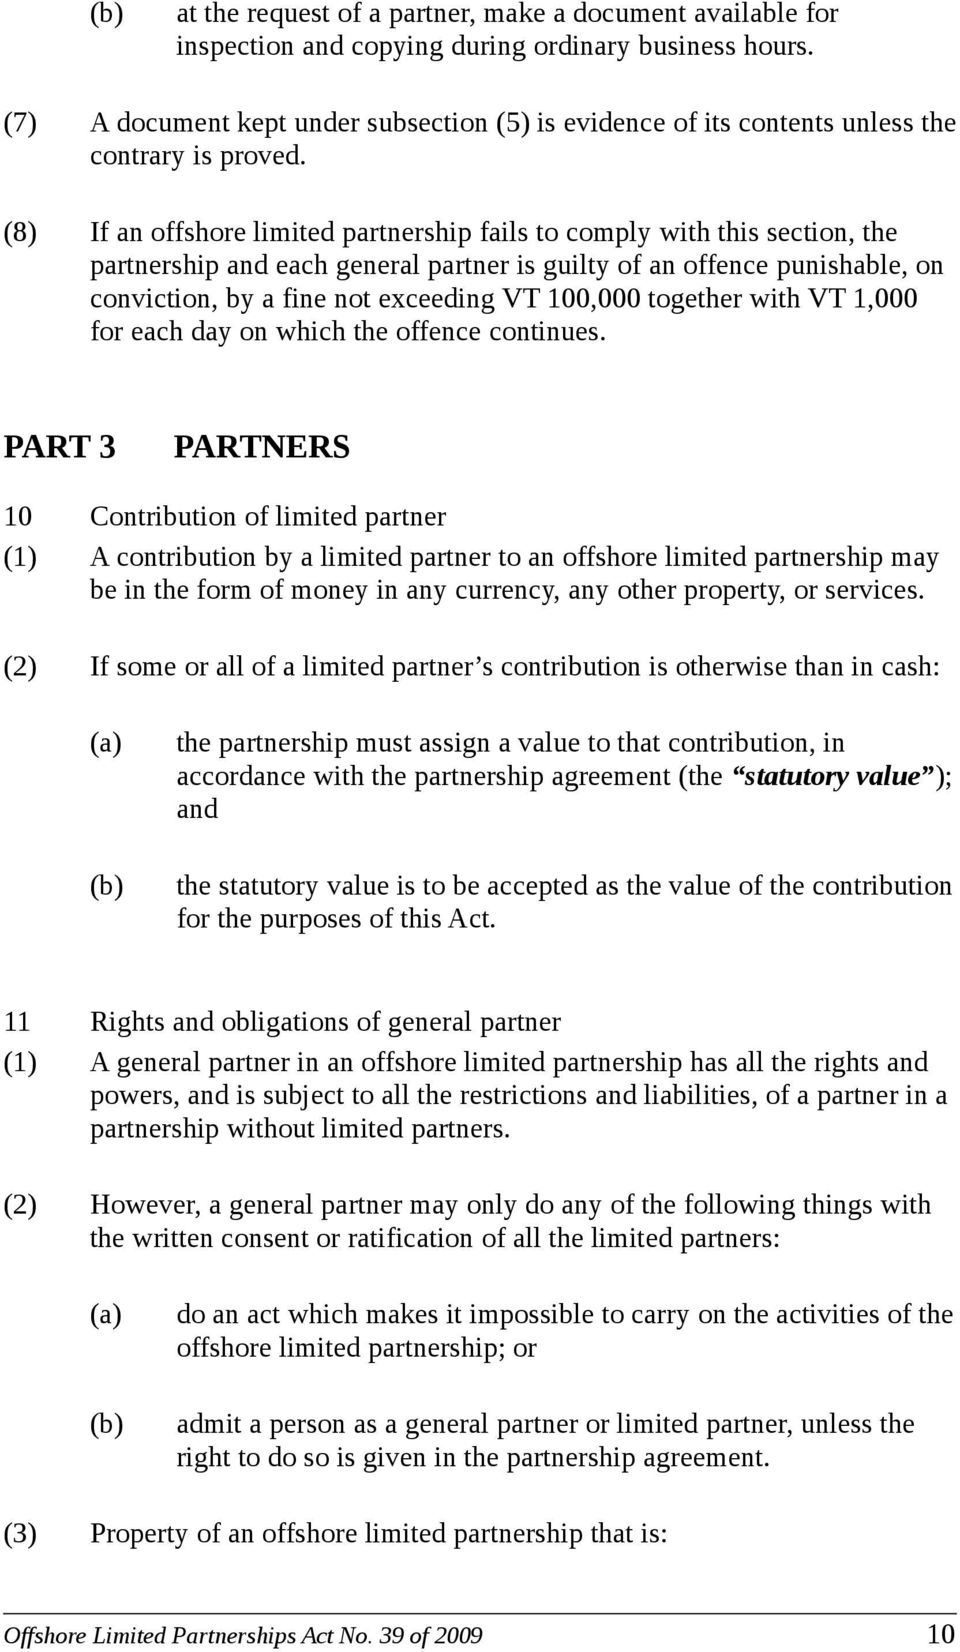 (8) If an offshore limited partnership fails to comply with this section, the partnership and each general partner is guilty of an offence punishable, on conviction, by a fine not exceeding VT